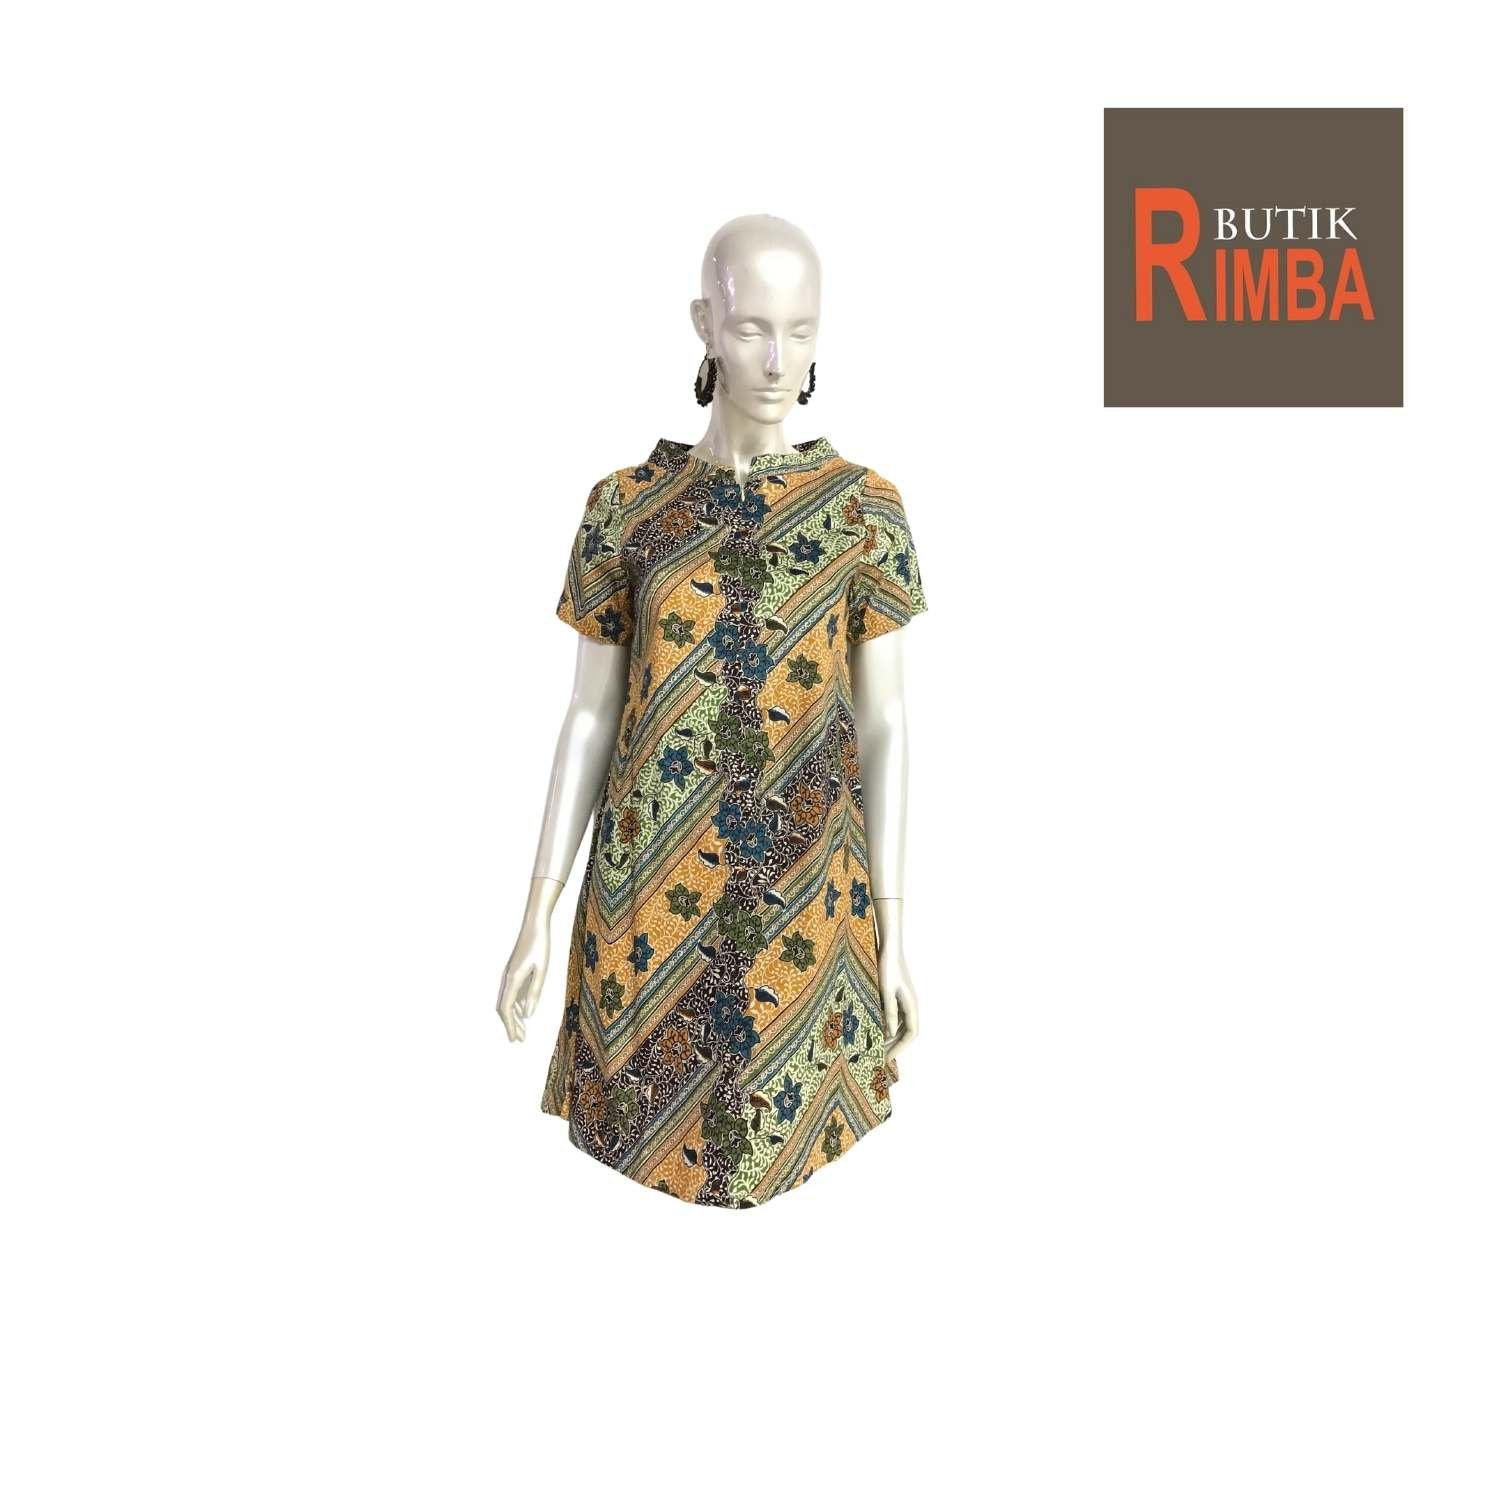 MODERN DRESS BATIK COTTON STRETCHABLE KNEE LENGTH FREE SIZE FOR FASHIONABLE WOMEN IN MIND 02